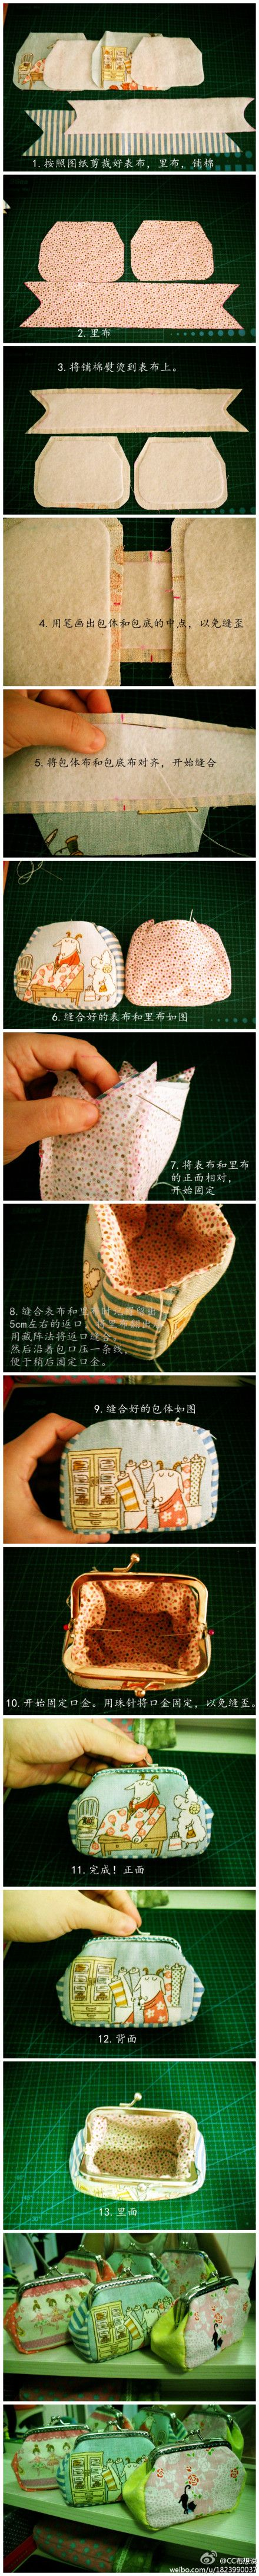 8.5cm square mouth gold package making tutorial